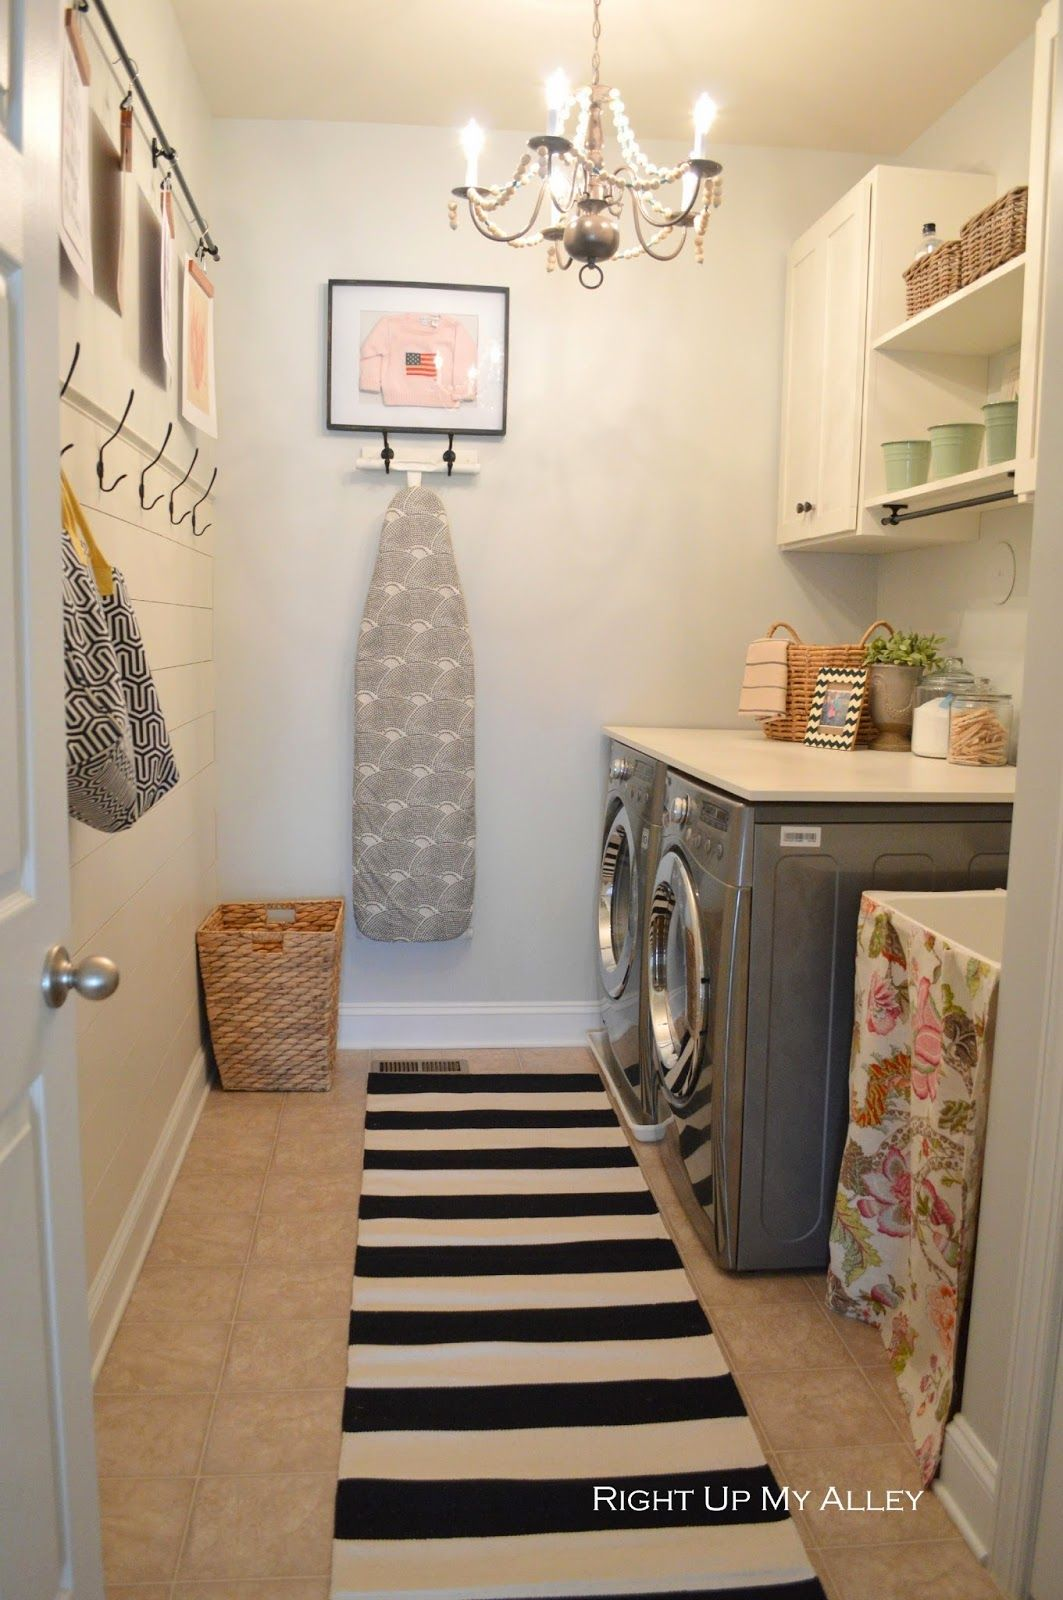 Laundry room wall decor pinterest - Orc Laundry Room Reveal I Like So Much About This Shelf Over Washer Dryer The Way The Ironing Board Is Hung With Art Above It Hooks On The Wall Art